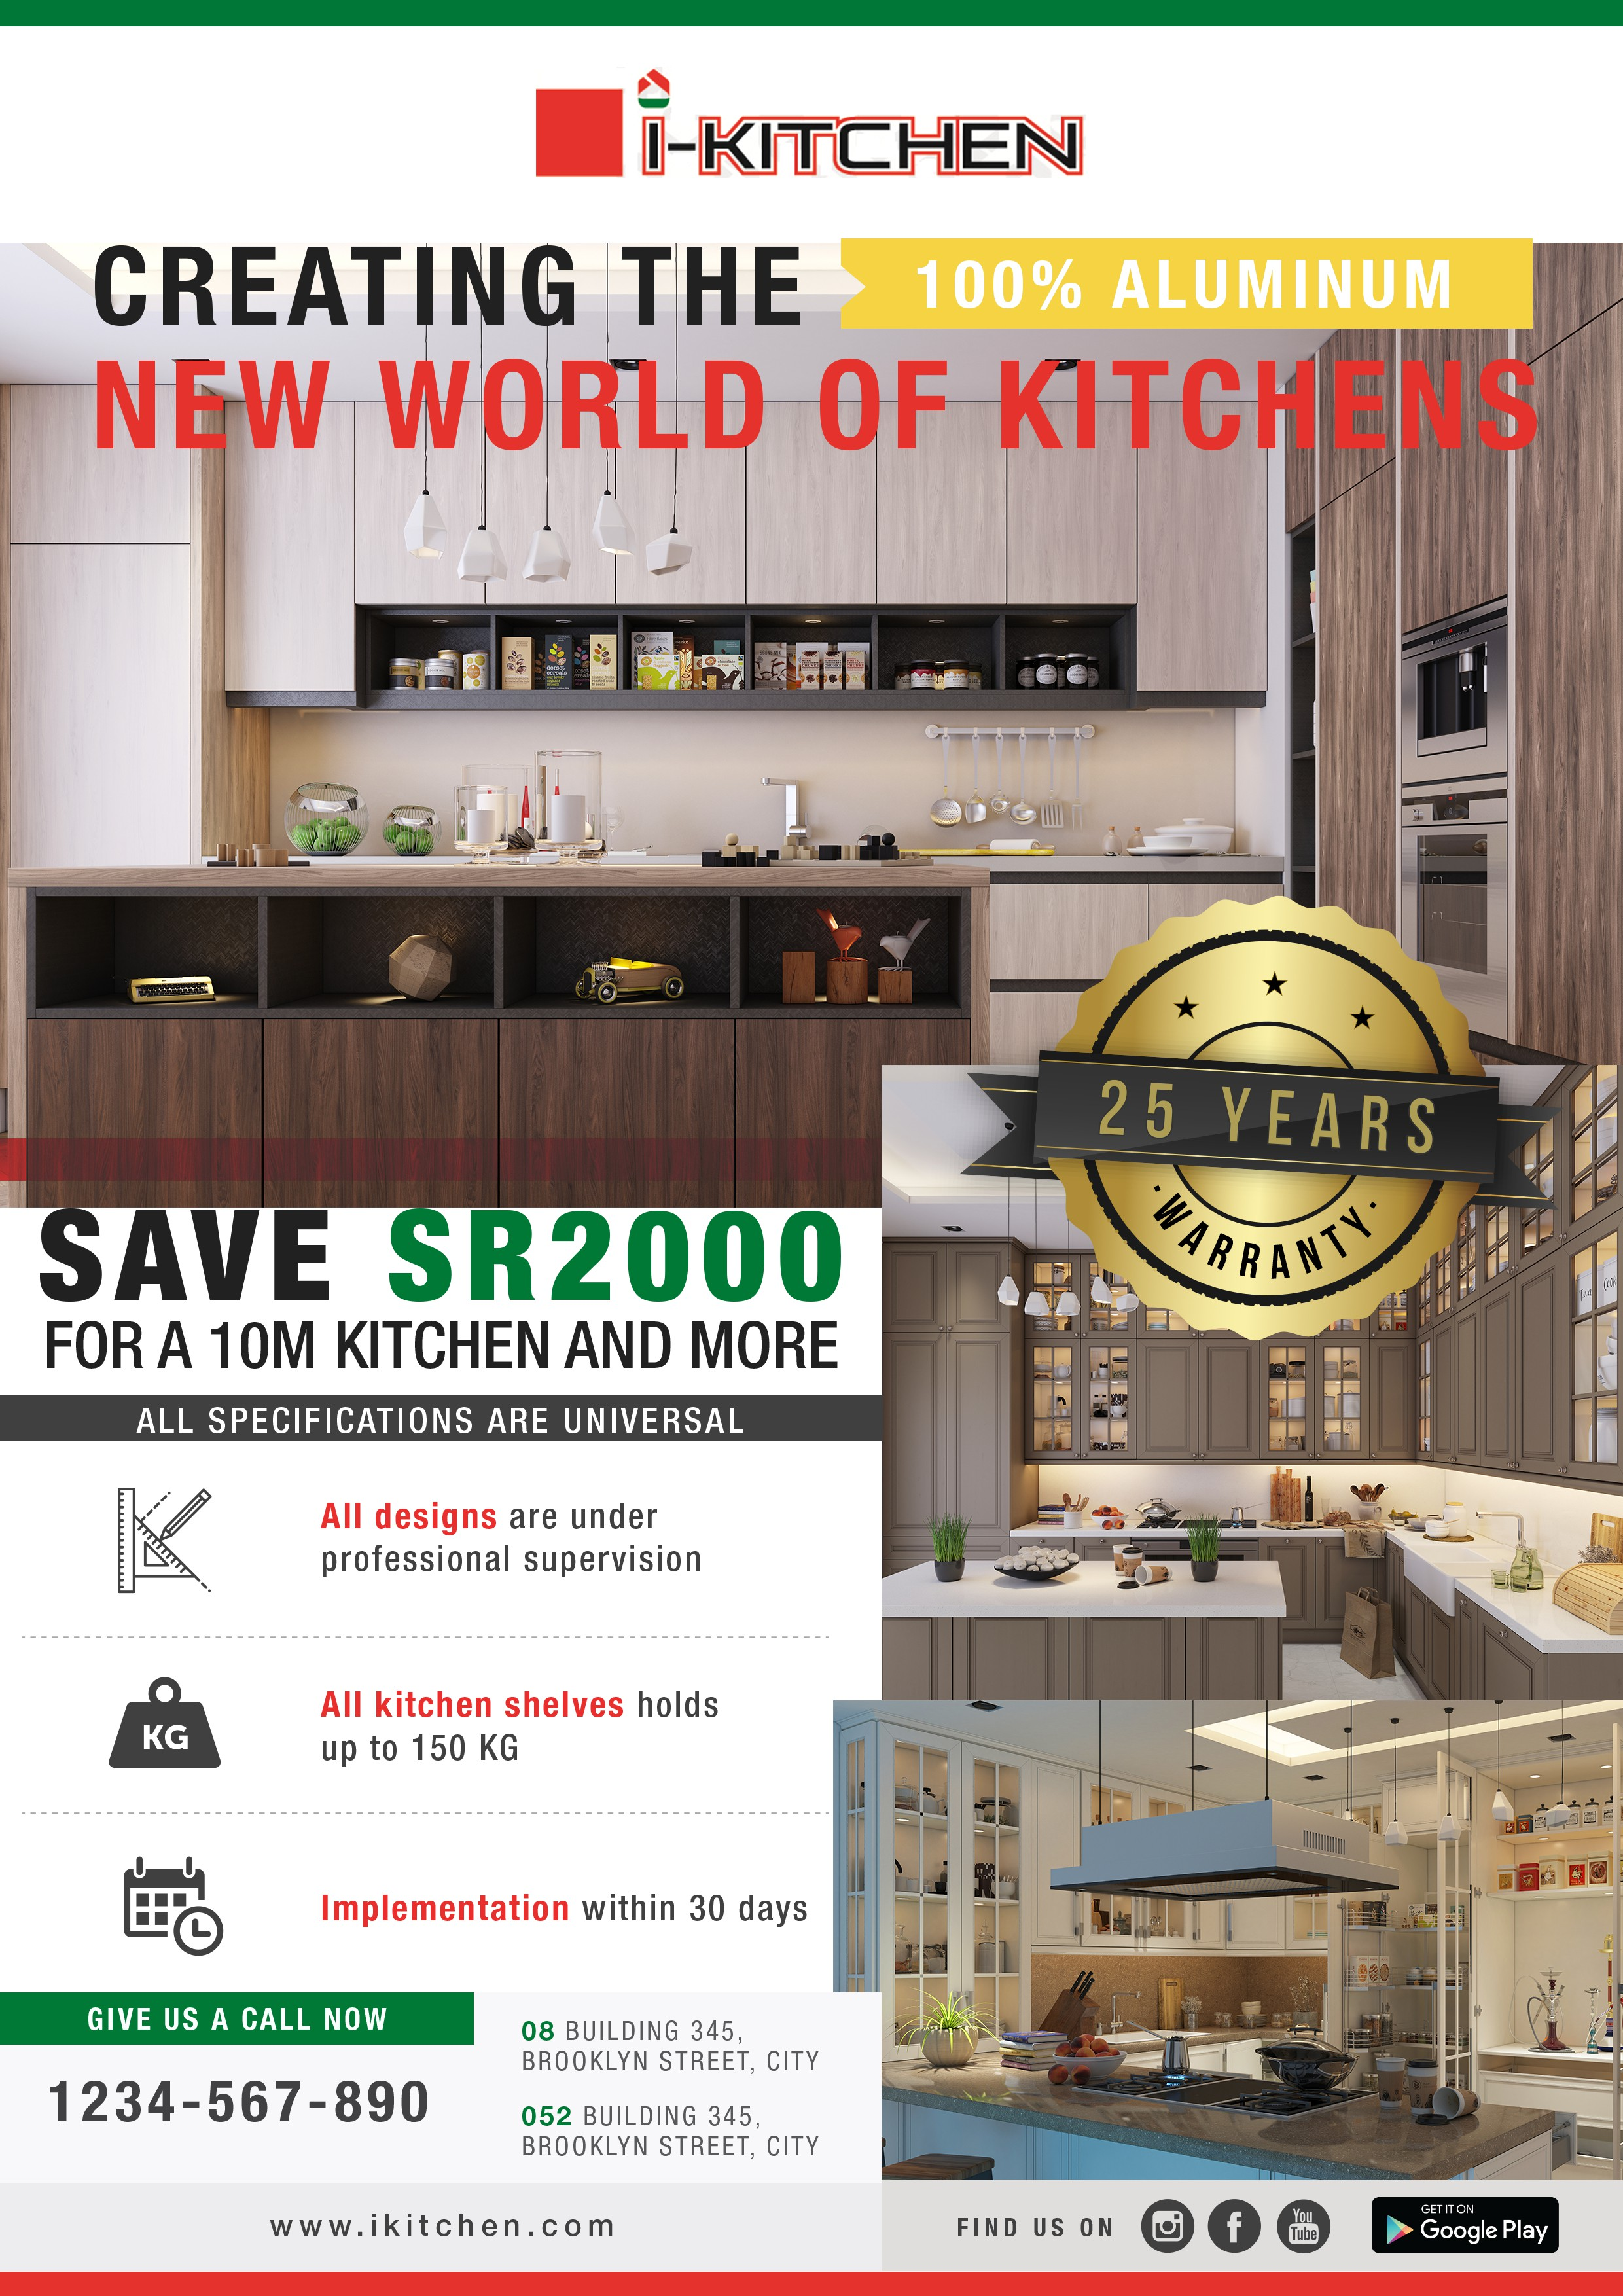 flyer to sow the offer that we have (kitchens)